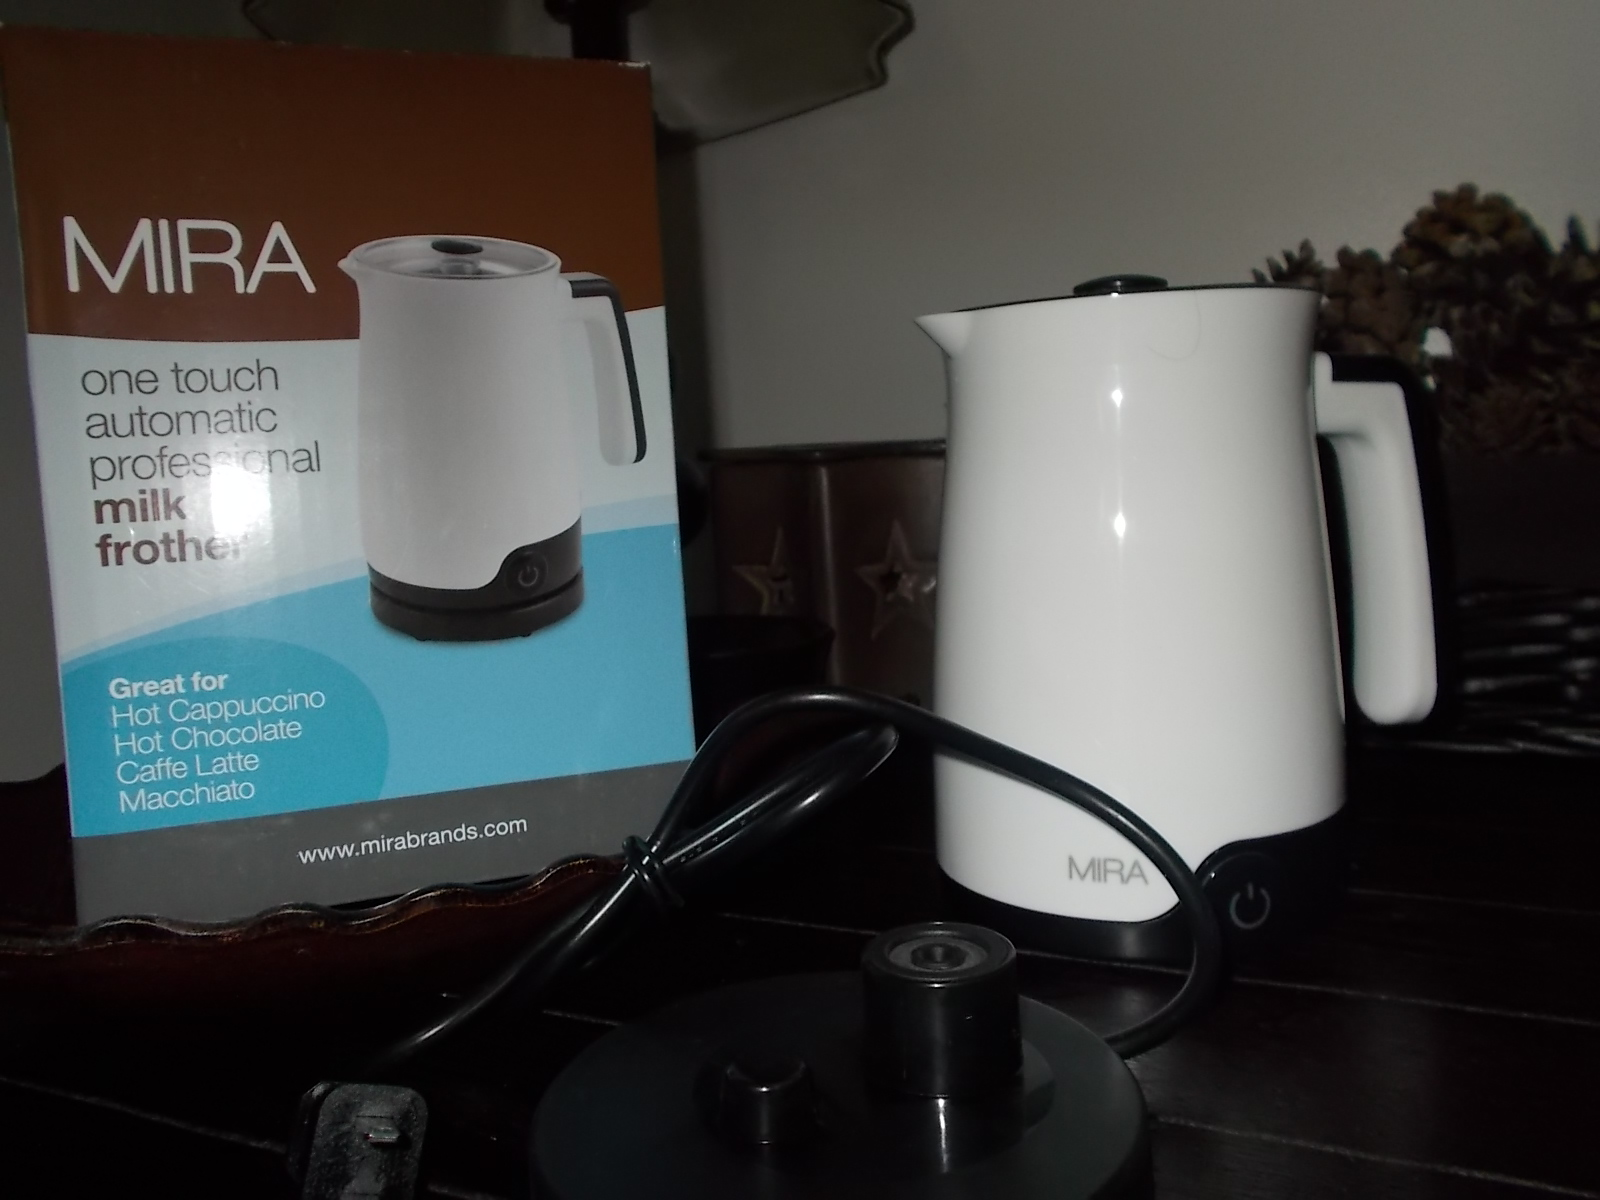 Touch N Foam Professional Popular Product Reviews By Amy Mira Electric Milk Frother